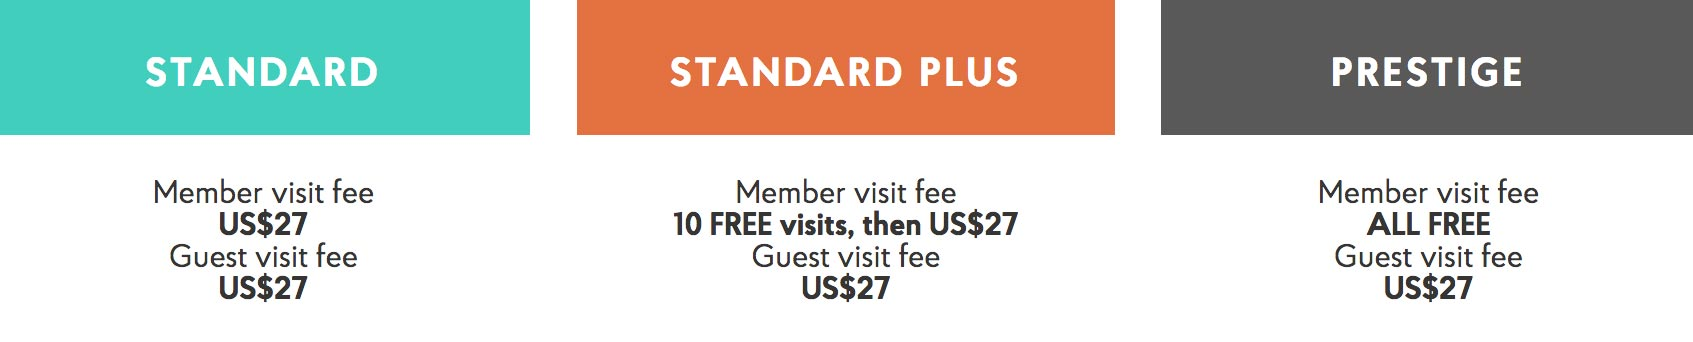 get a priority pass today: Priority Pass membership levels